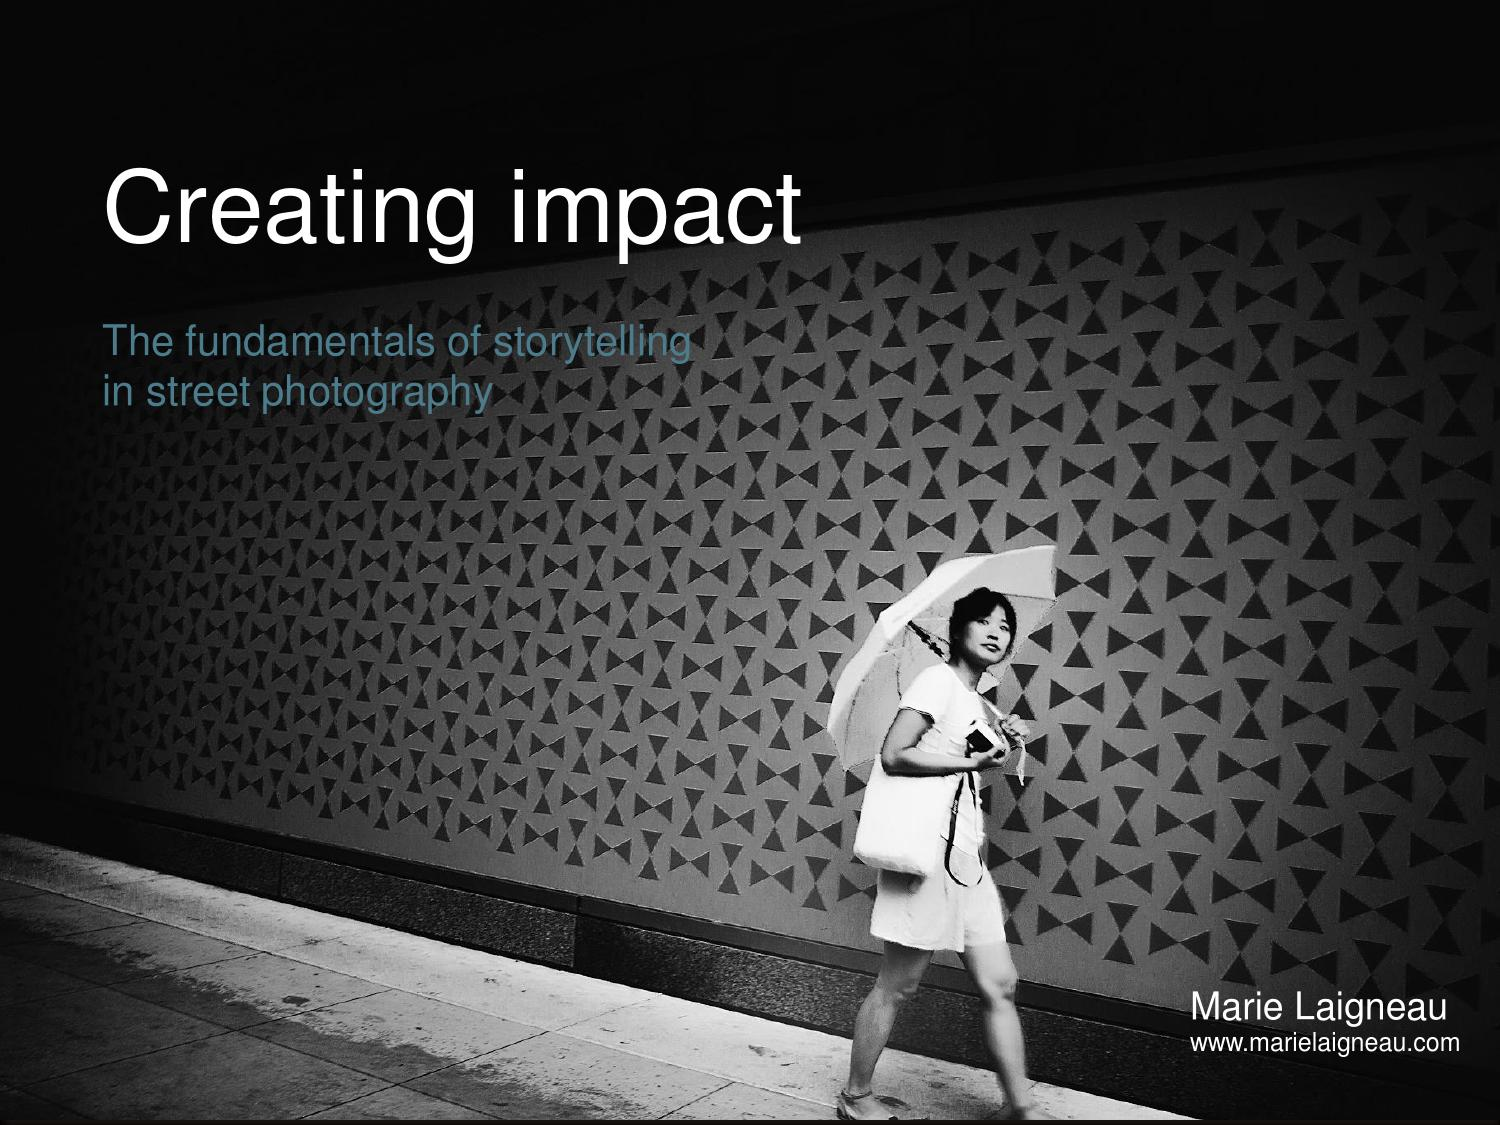 Creating impact: storytelling in street photography